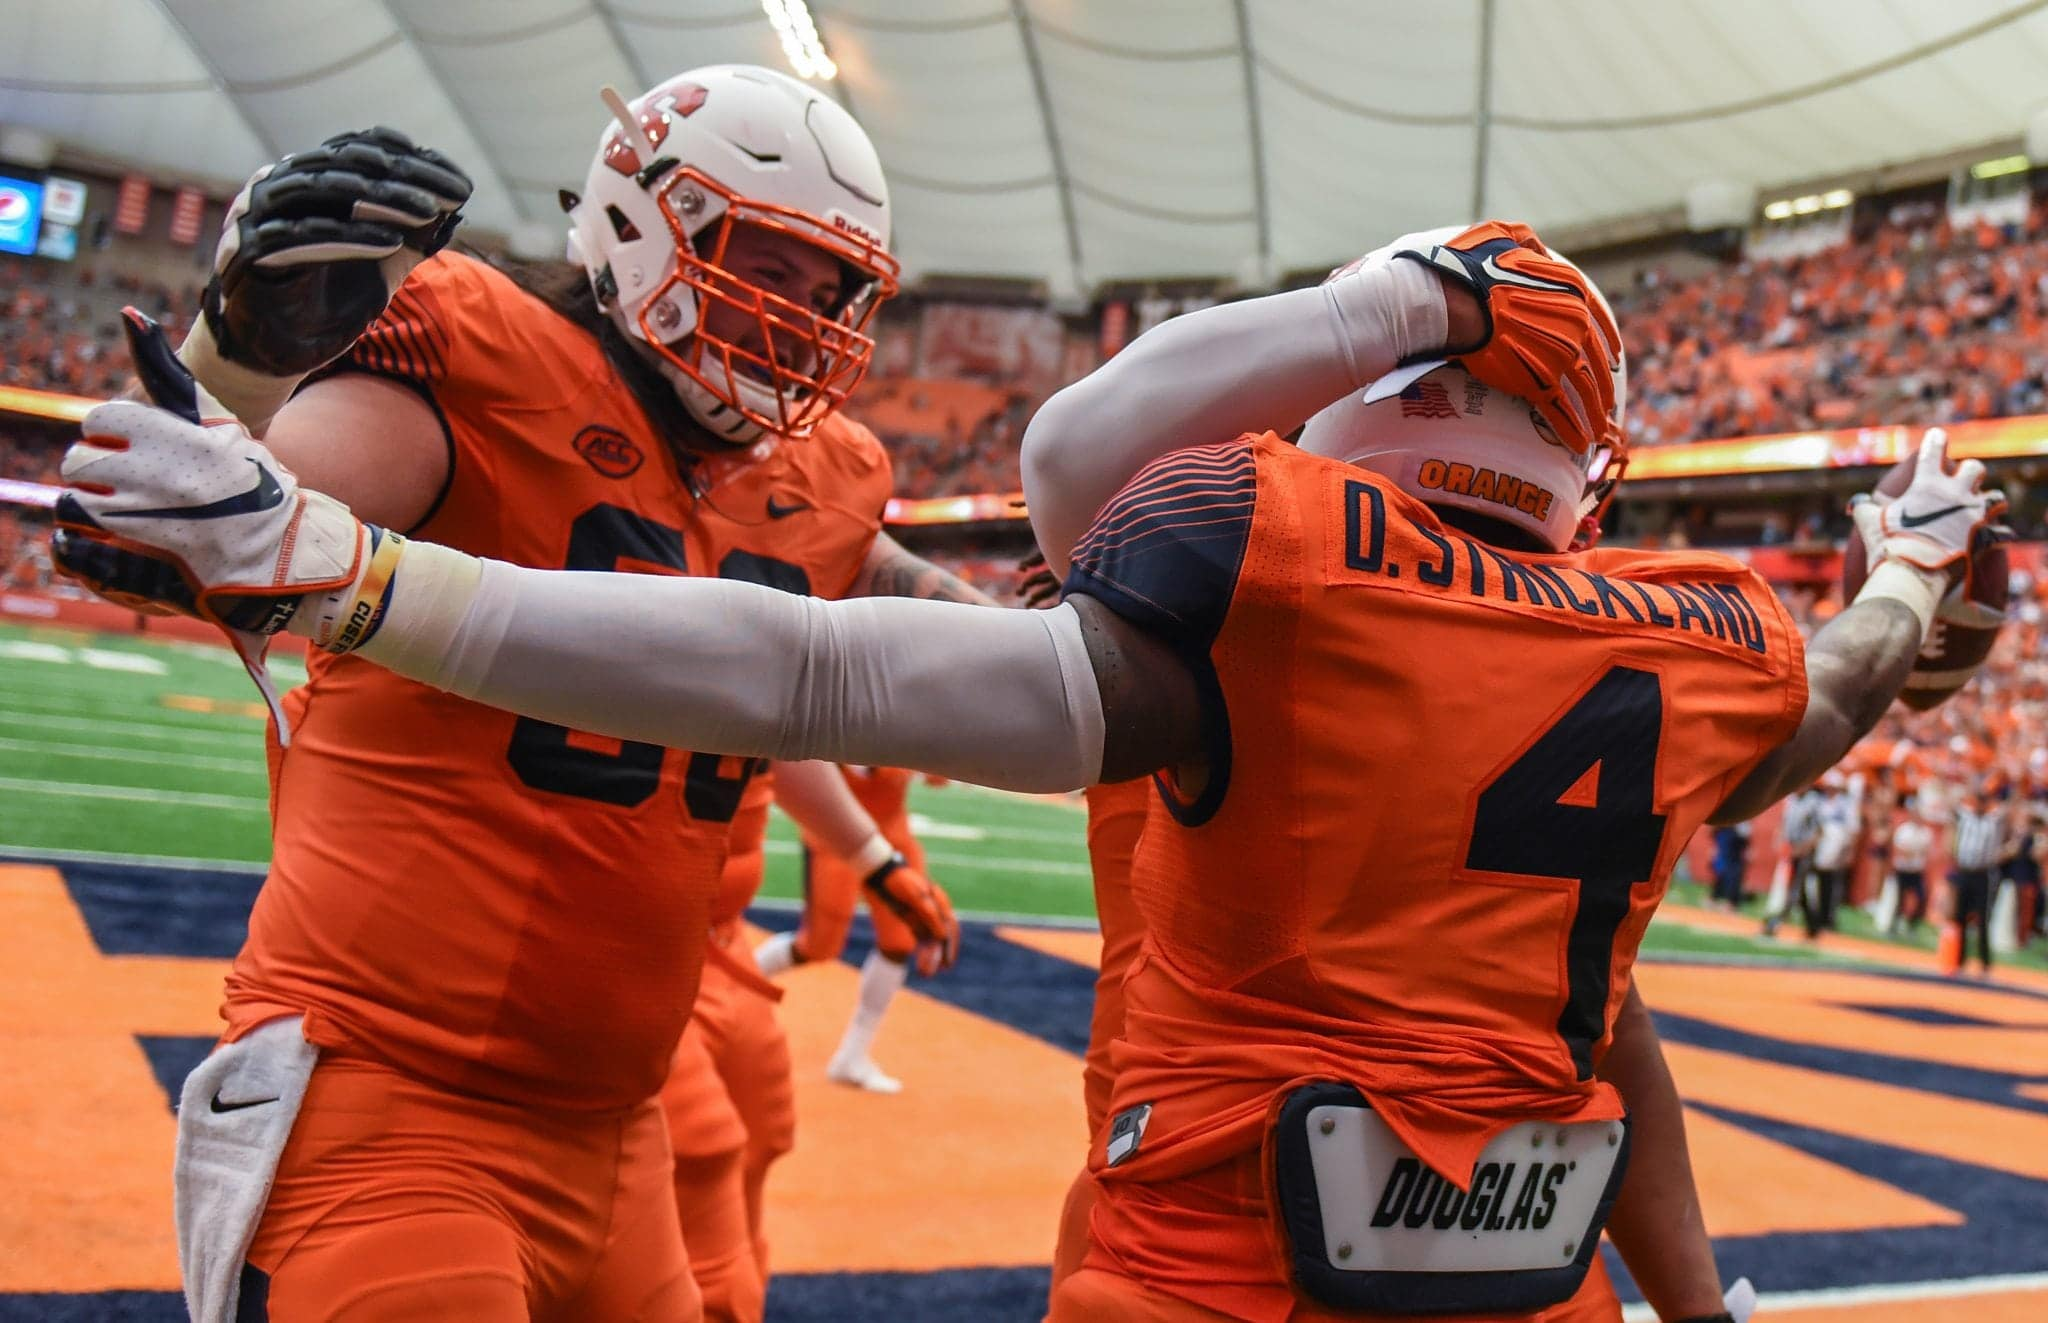 Syracuse University running back Dontae Strickland (4), celebrates a touchdown with his teammates.